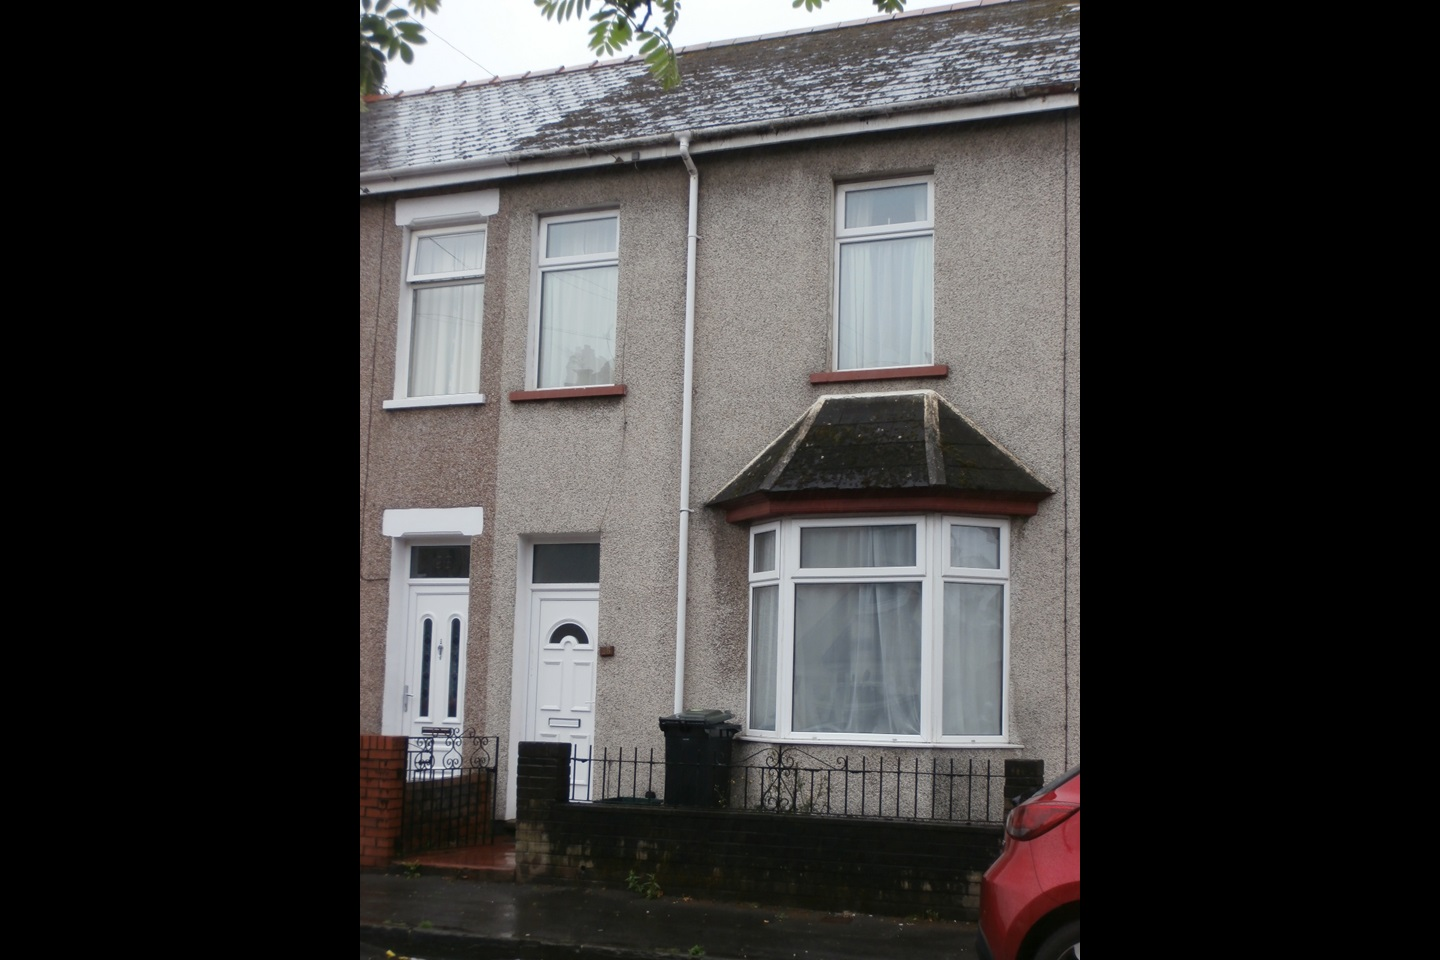 2 Bed Terraced House, Stockton Rd Newport, NP19